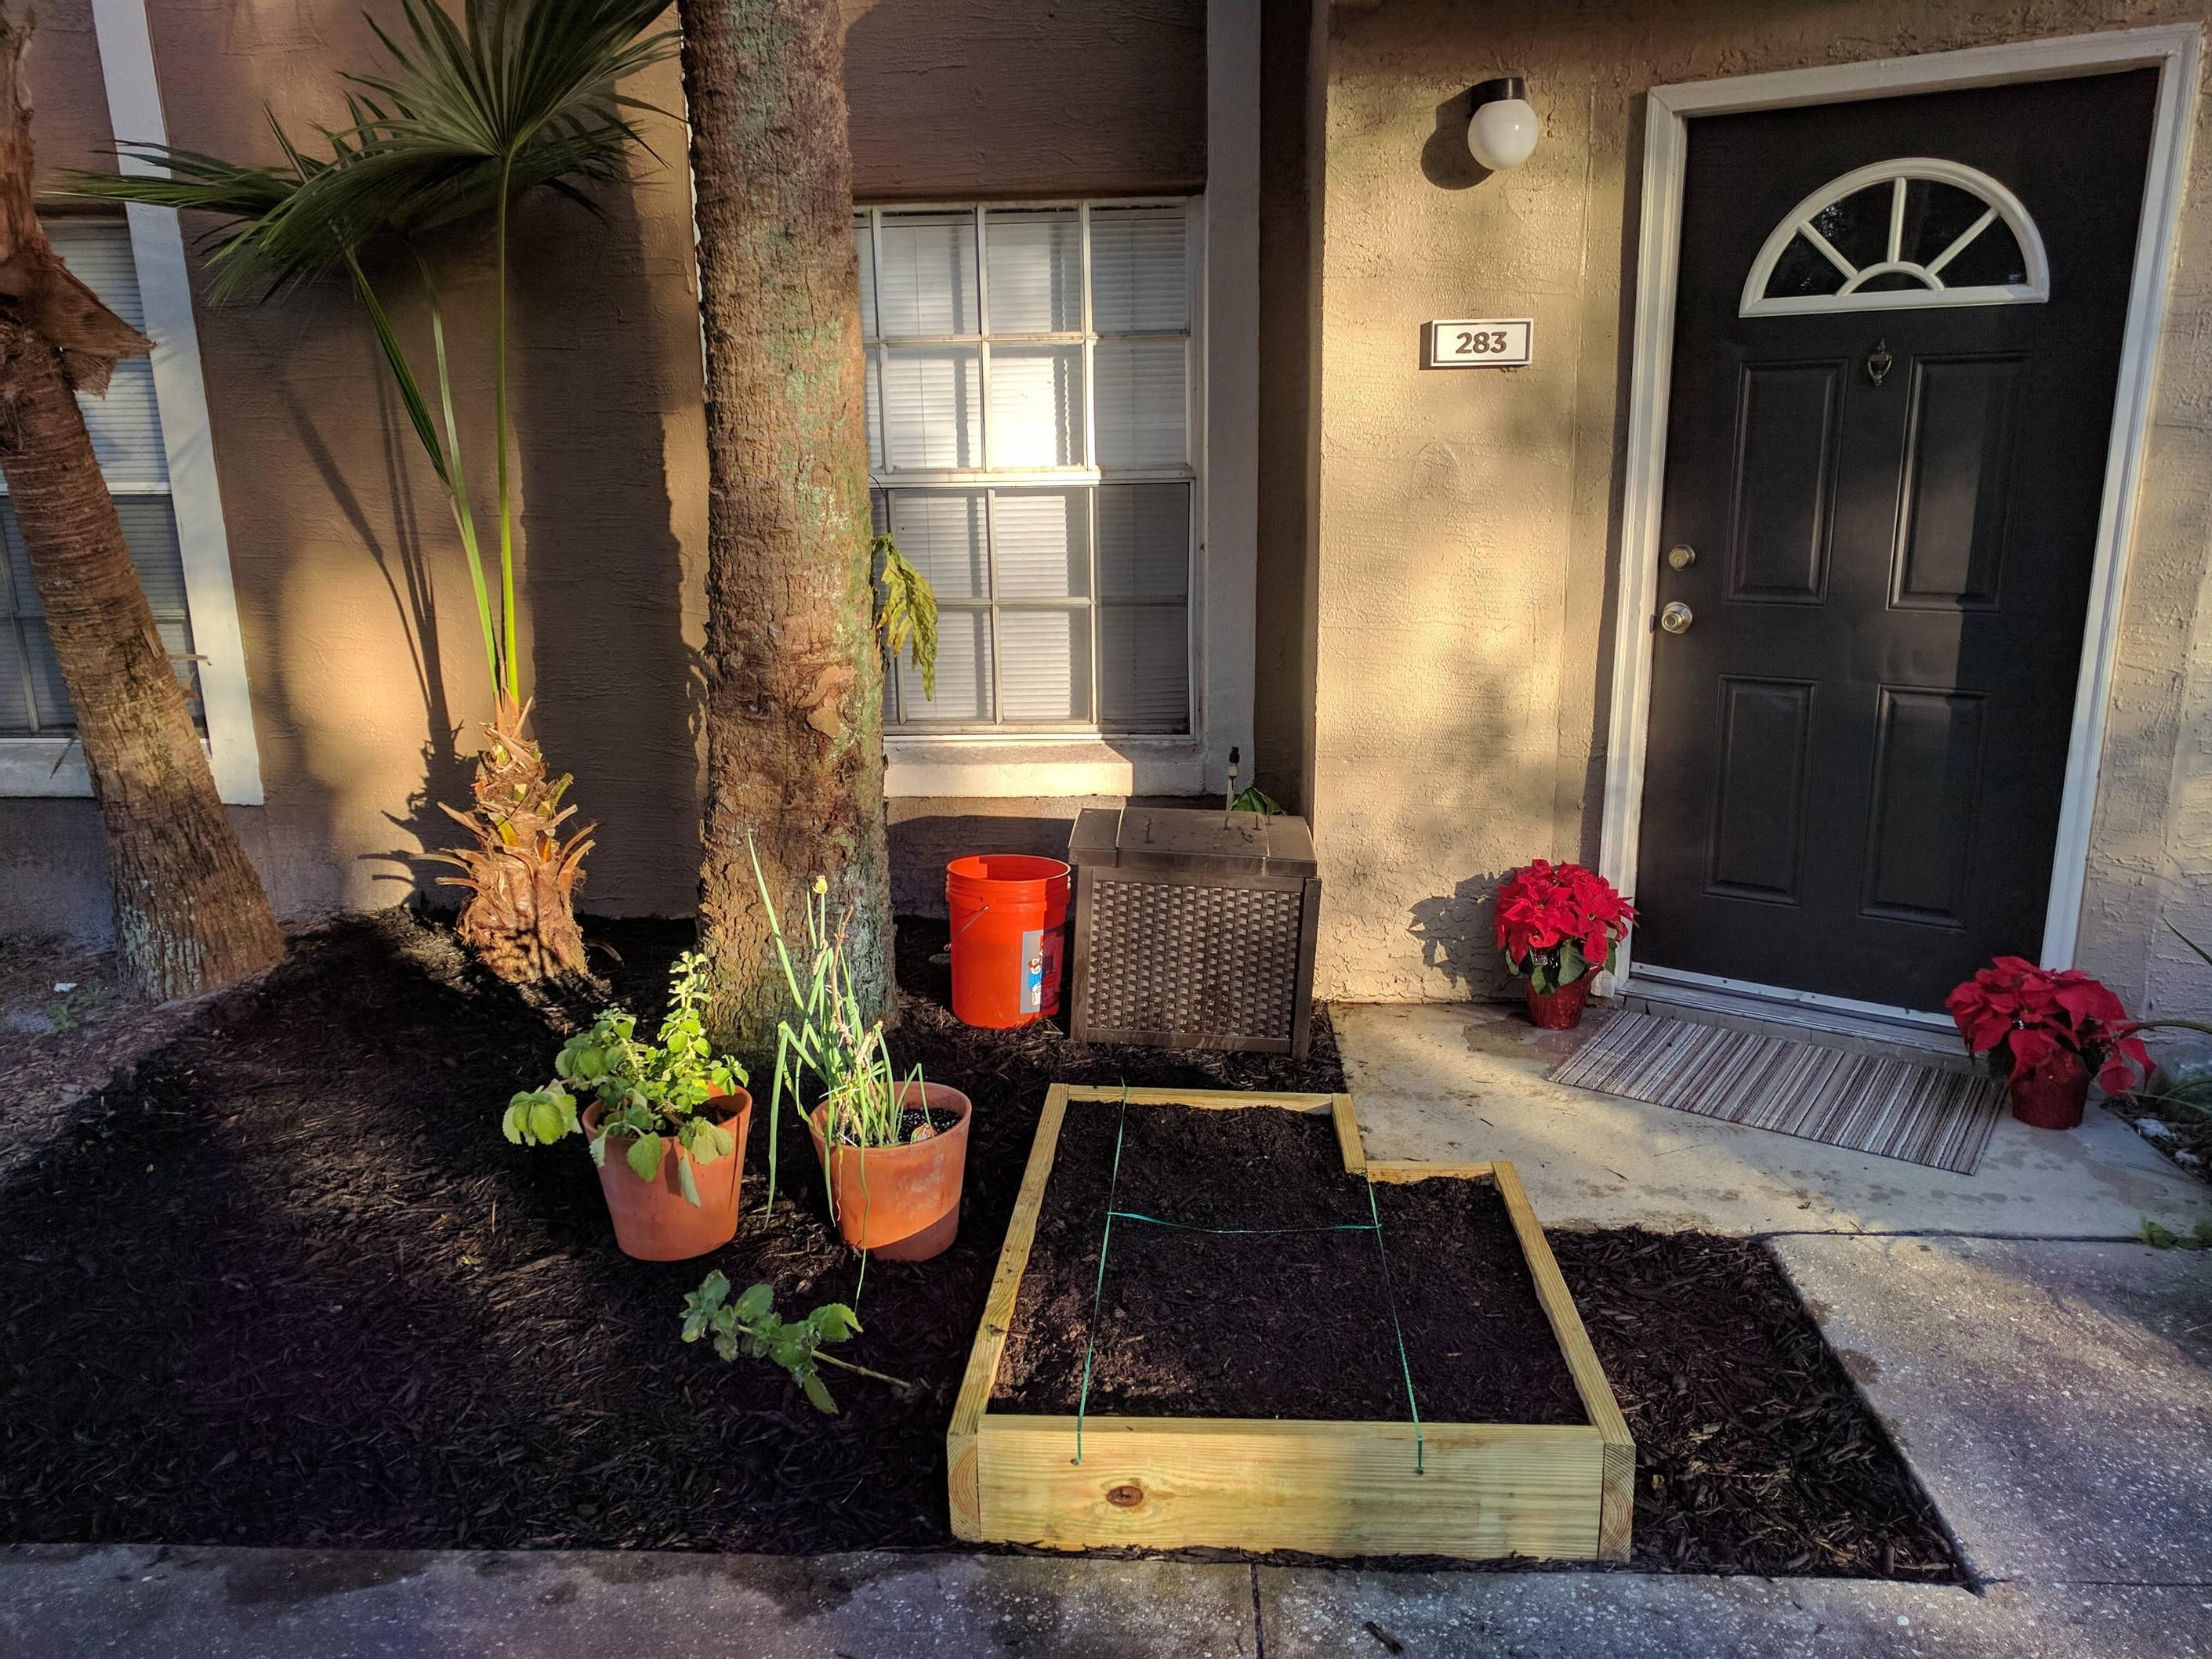 It's about as big as I could make it for an apartment! Starting the year off with dirt on my hands :) #gardening #garden #DIY #home #flowers #roses #nature #landscaping #horticulture